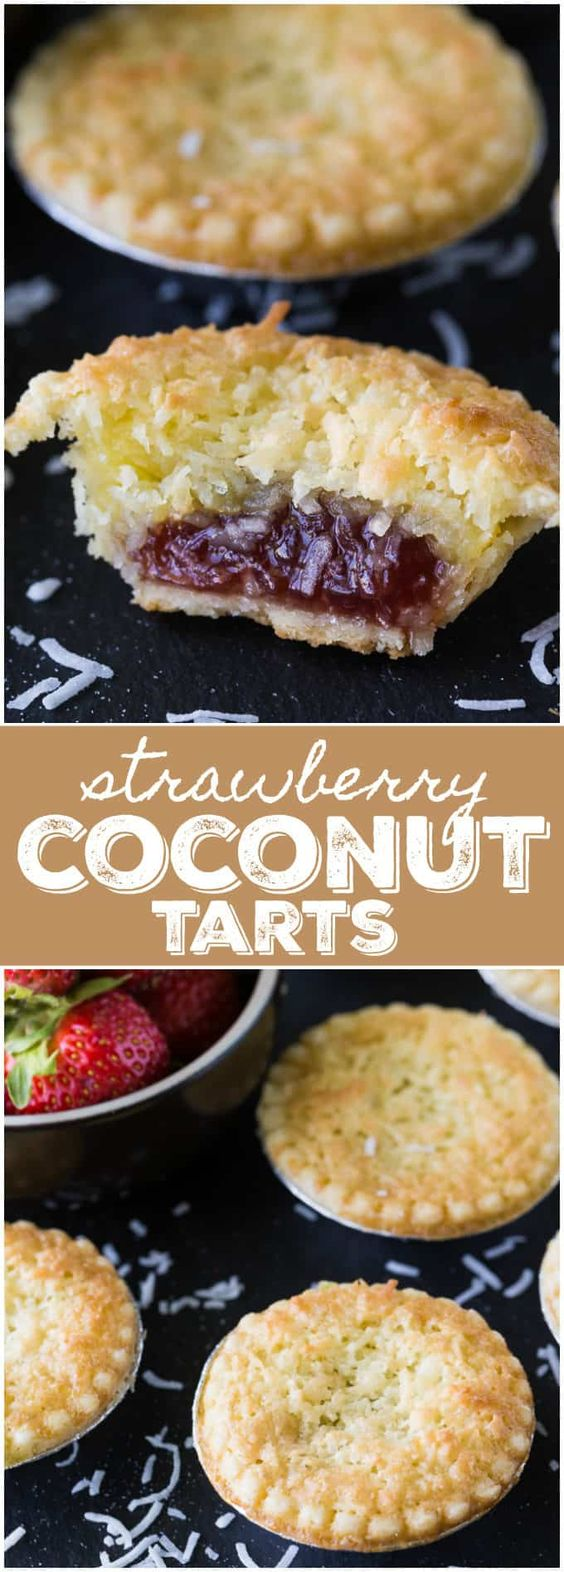 Strawberry Coconut Tarts